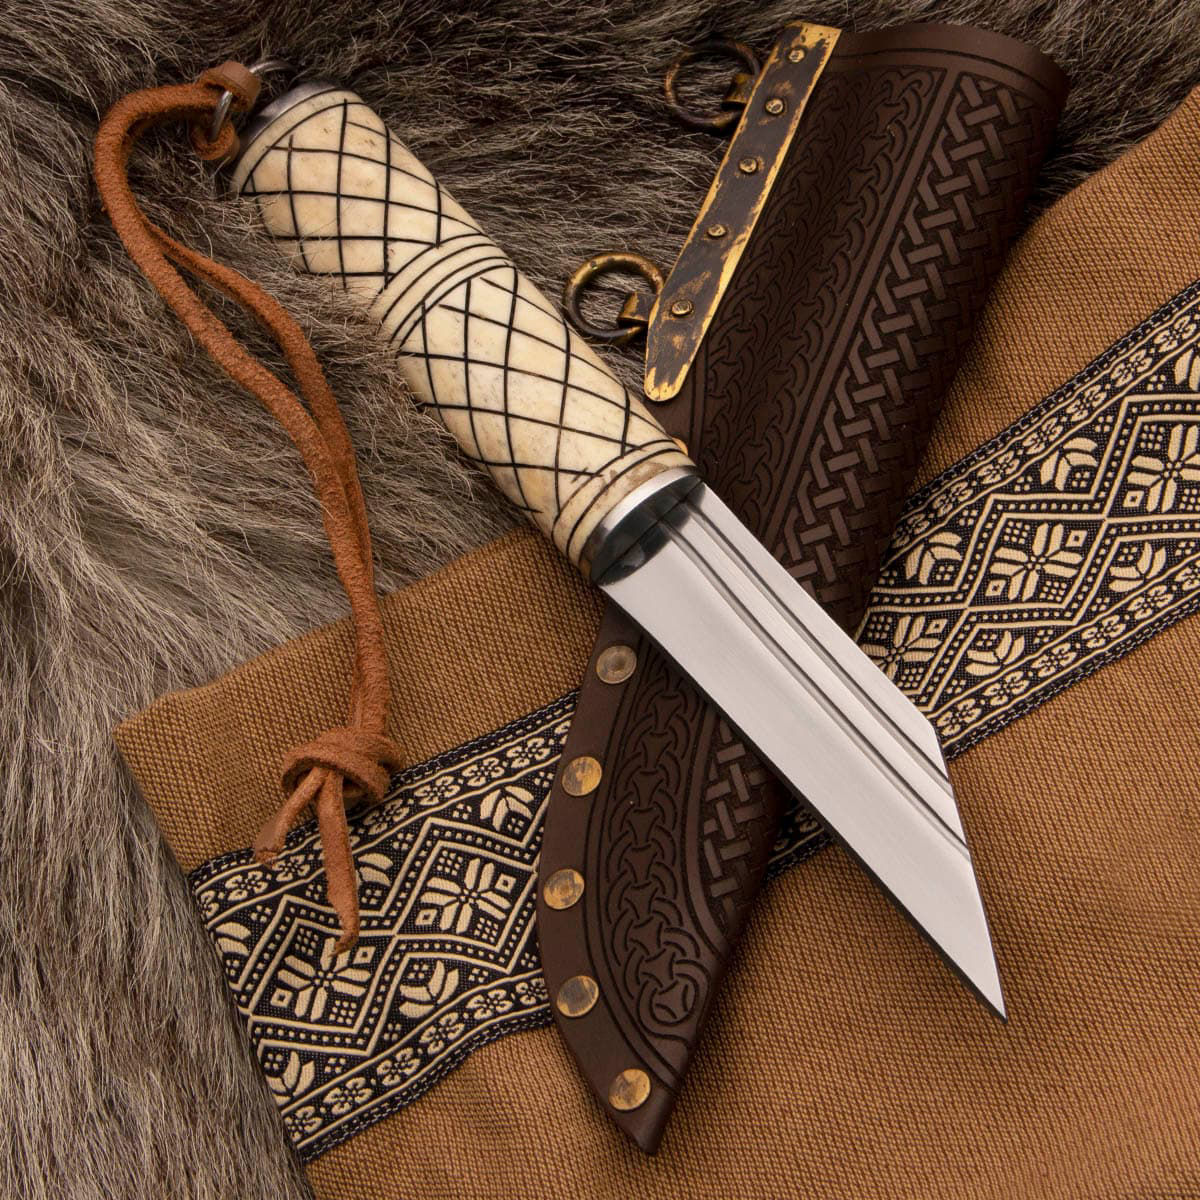 Voyager Scramasax Viking Knife with high carbon steel blade, brass hardware, carved bone handle and embossed leather sheath